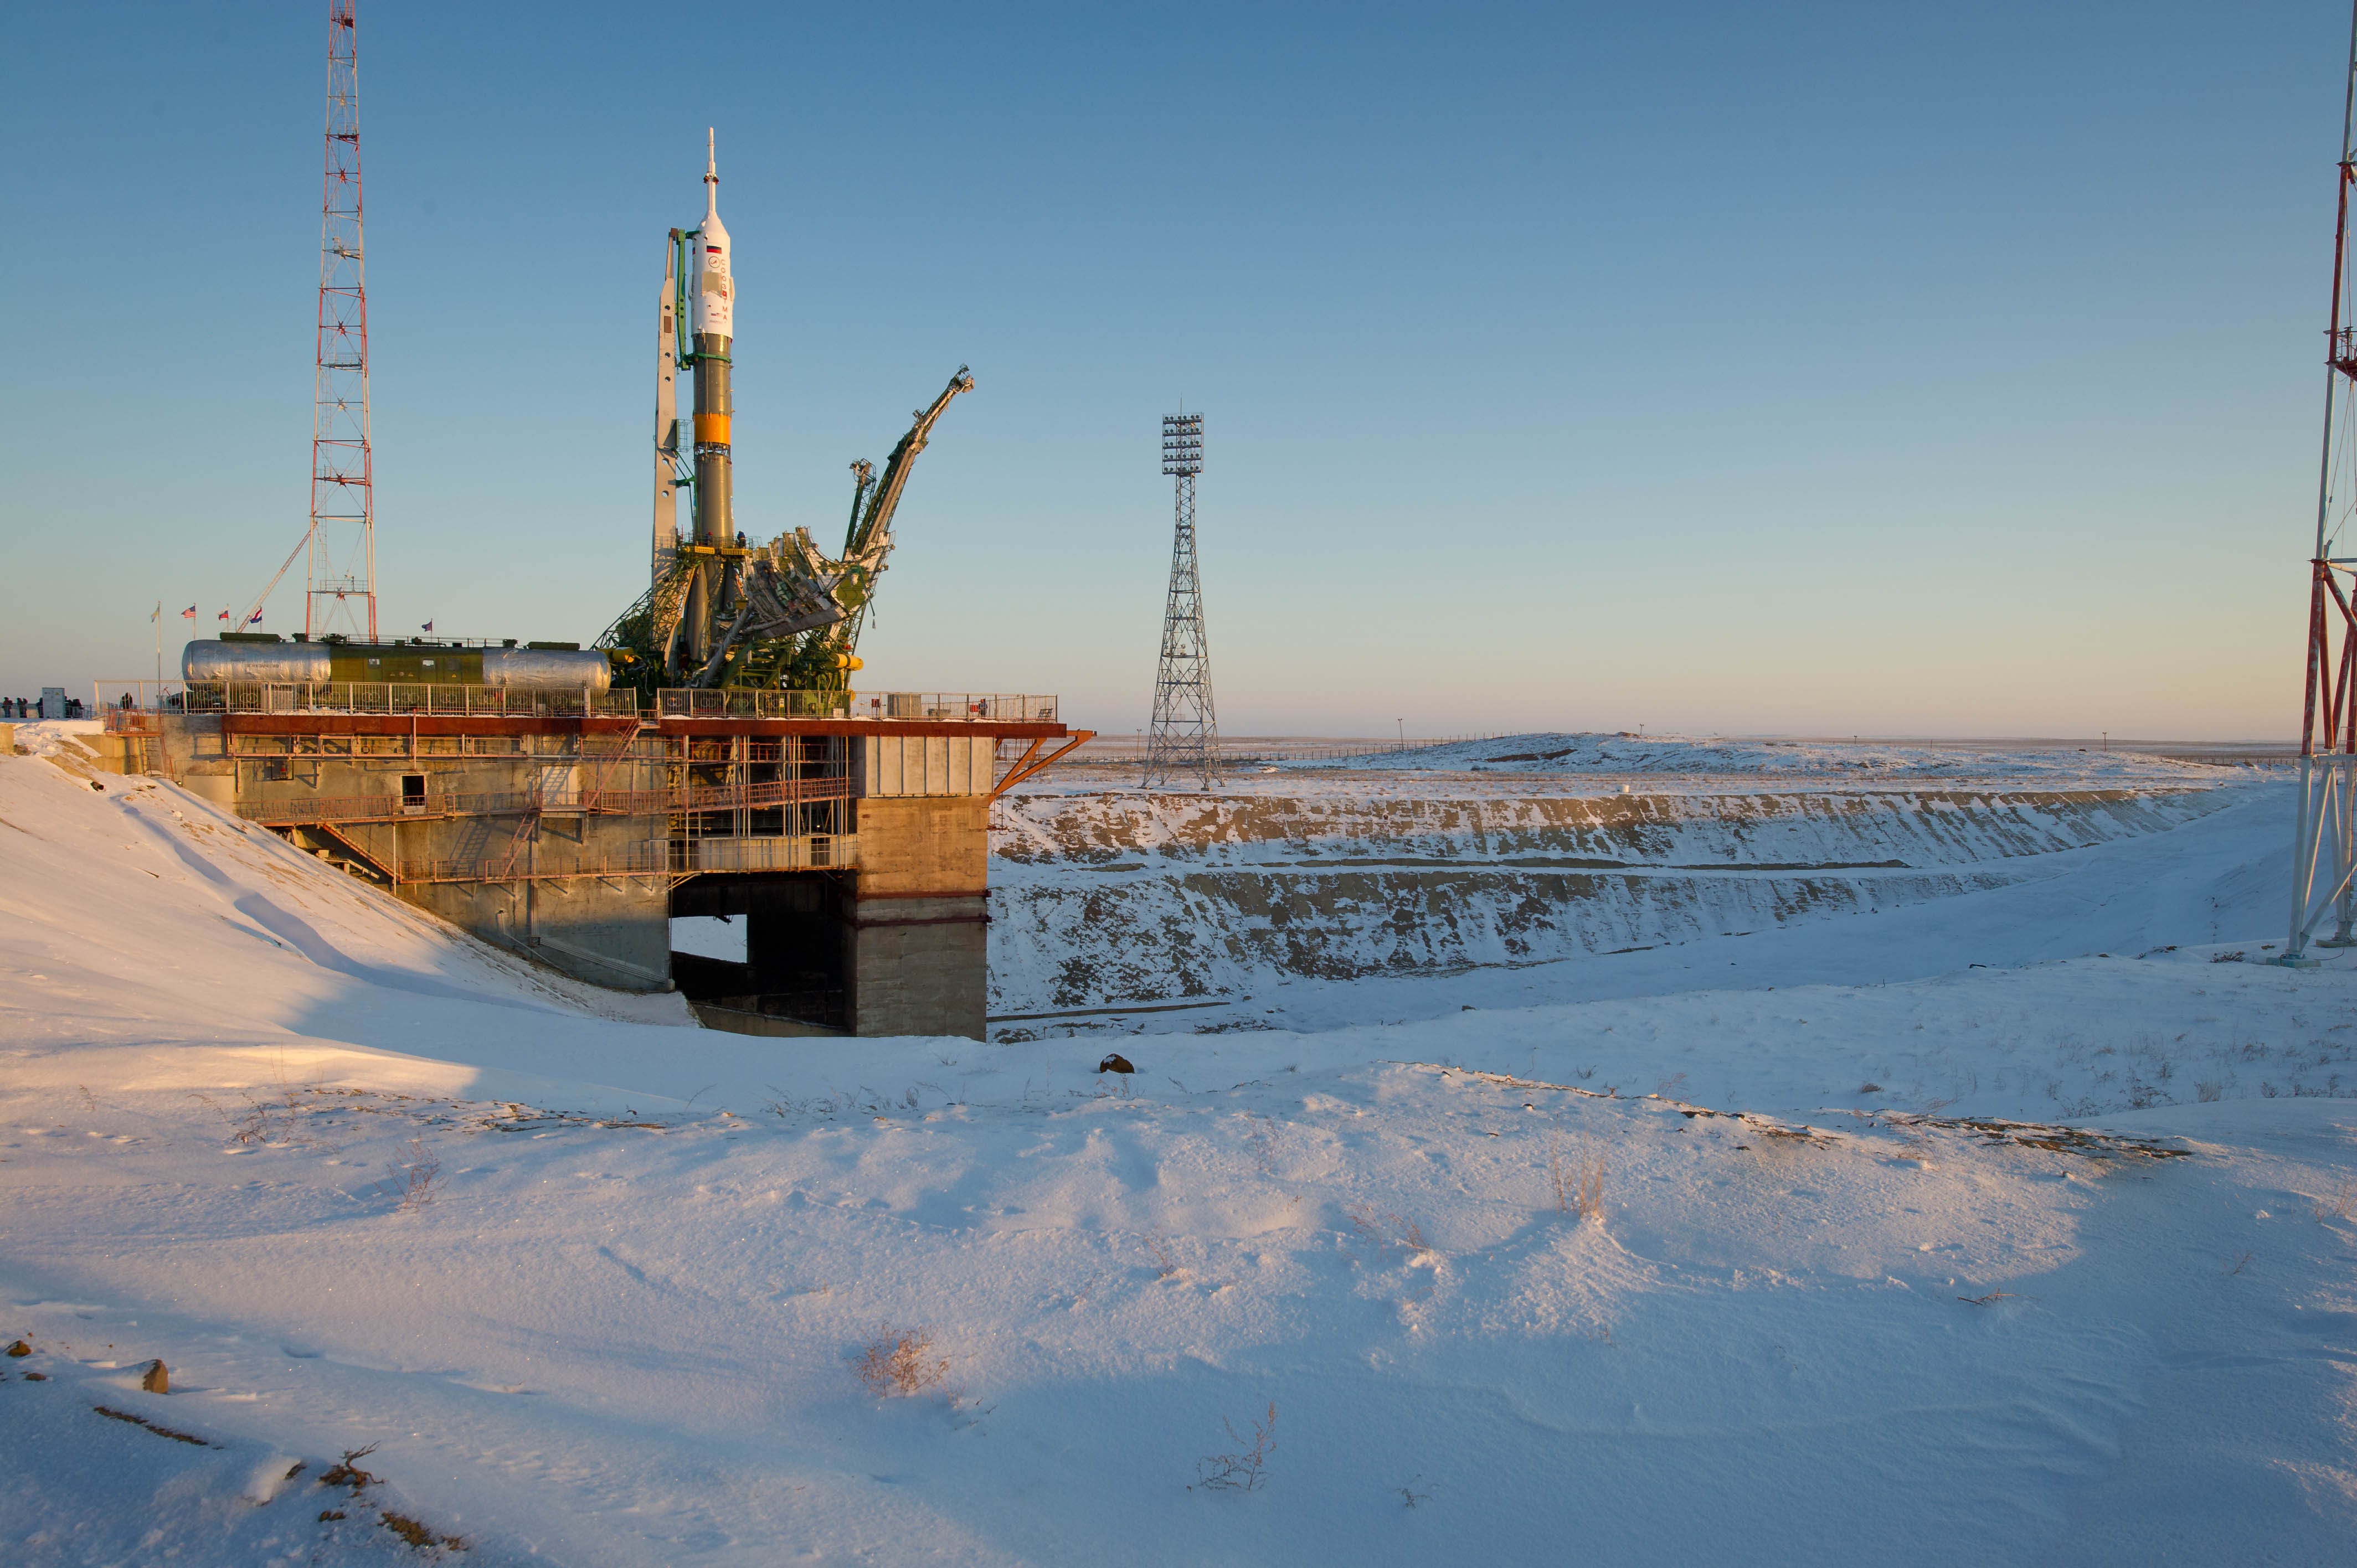 Soyuz TMA-03M rocket at the launch pad